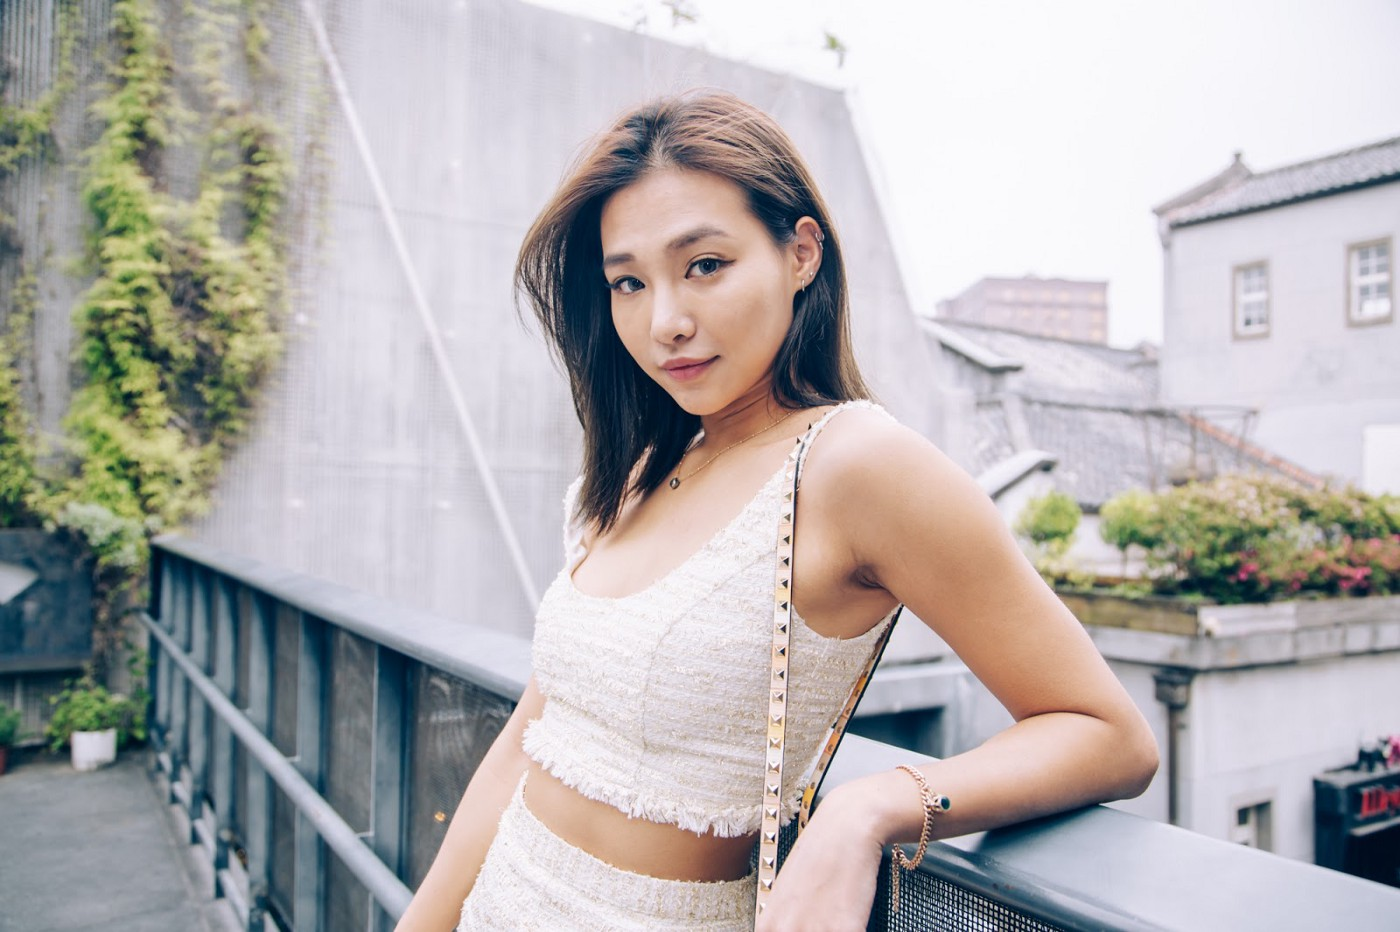 2021 Influencer Marketing Trends 1. Influencer doing a photoshoot and posing against an aesthetic backdrop in Taipei, Taiwan.